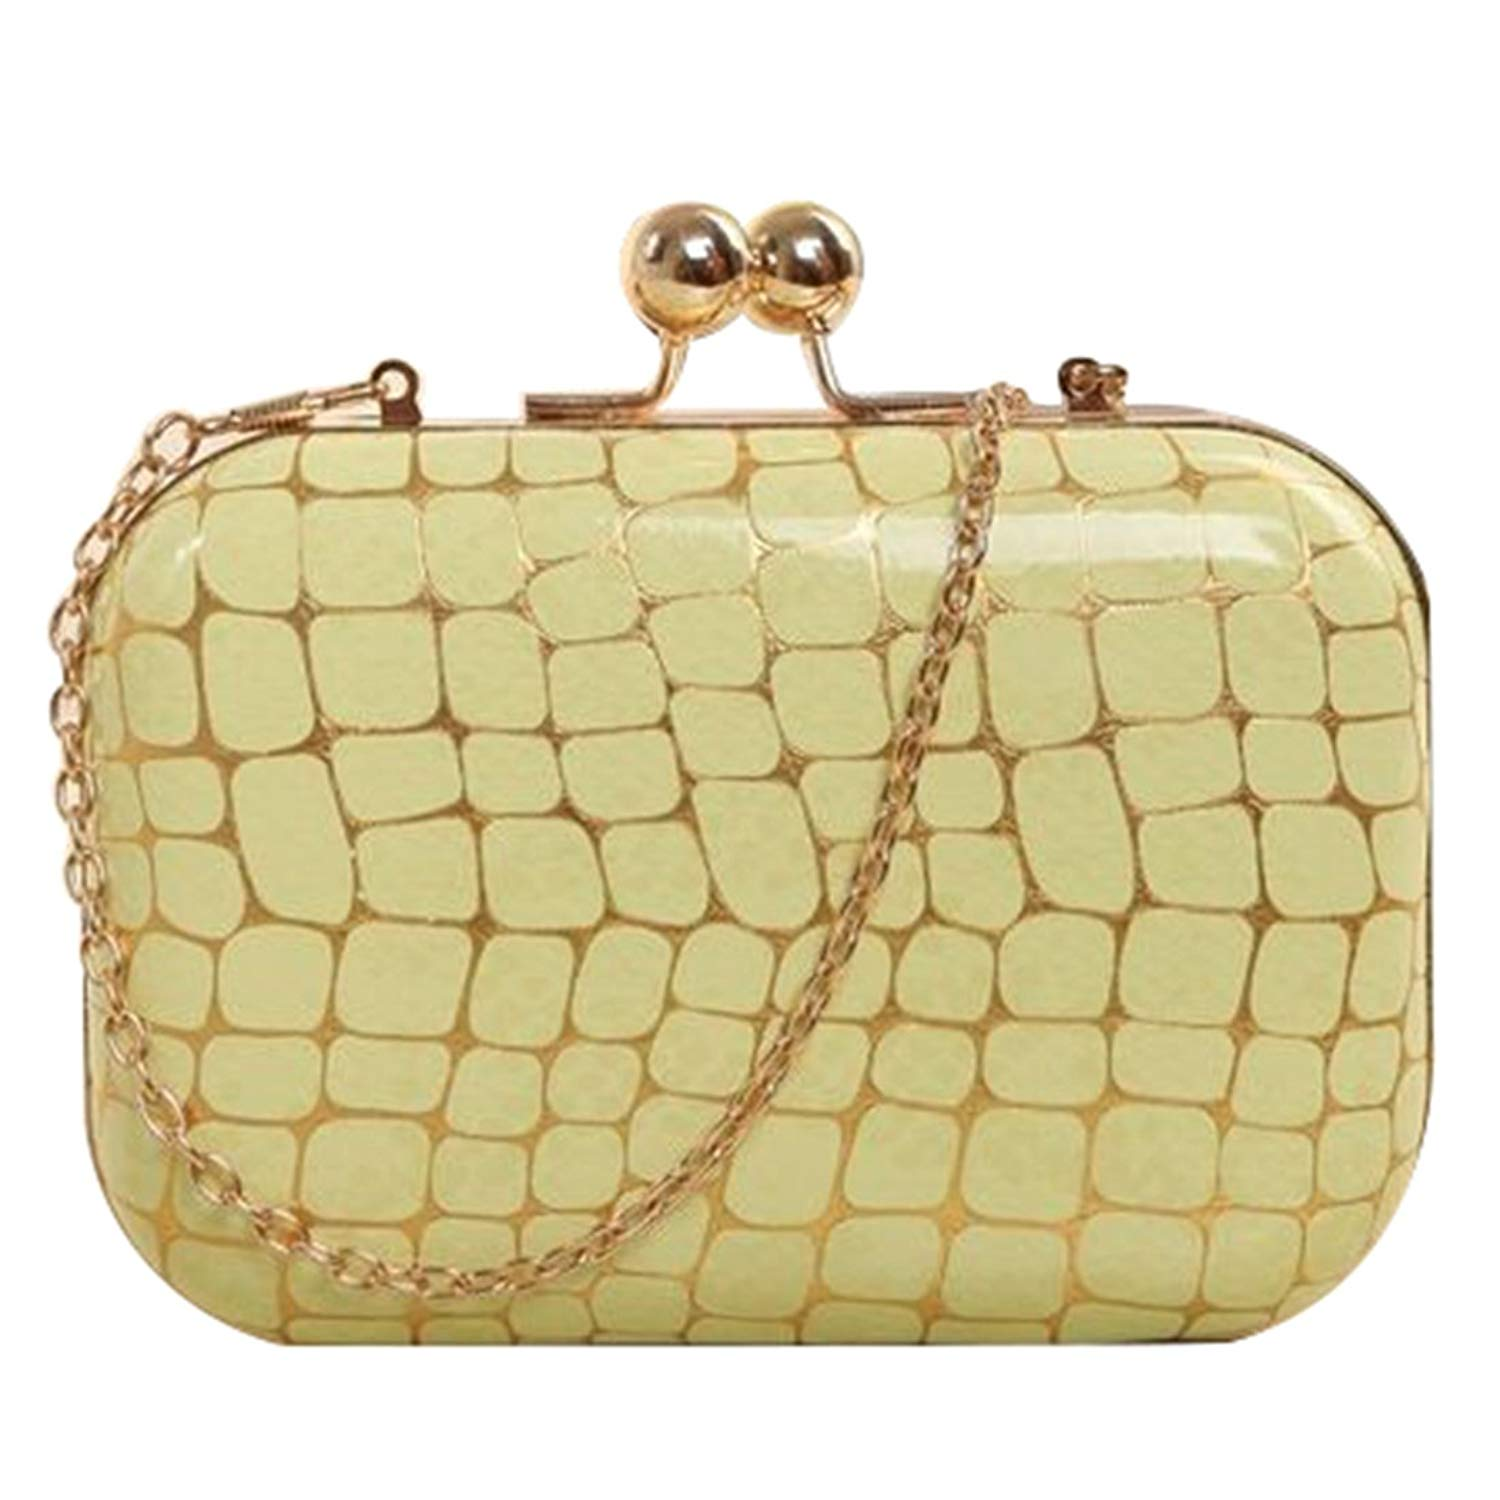 Retro Stone pattern Girls Shoulder Bag - SODIAL(R)Retro Stone pattern PU leather Women's mini evening bag fashion clutch banquet bag girls shoulder bag Messenger bag, Green